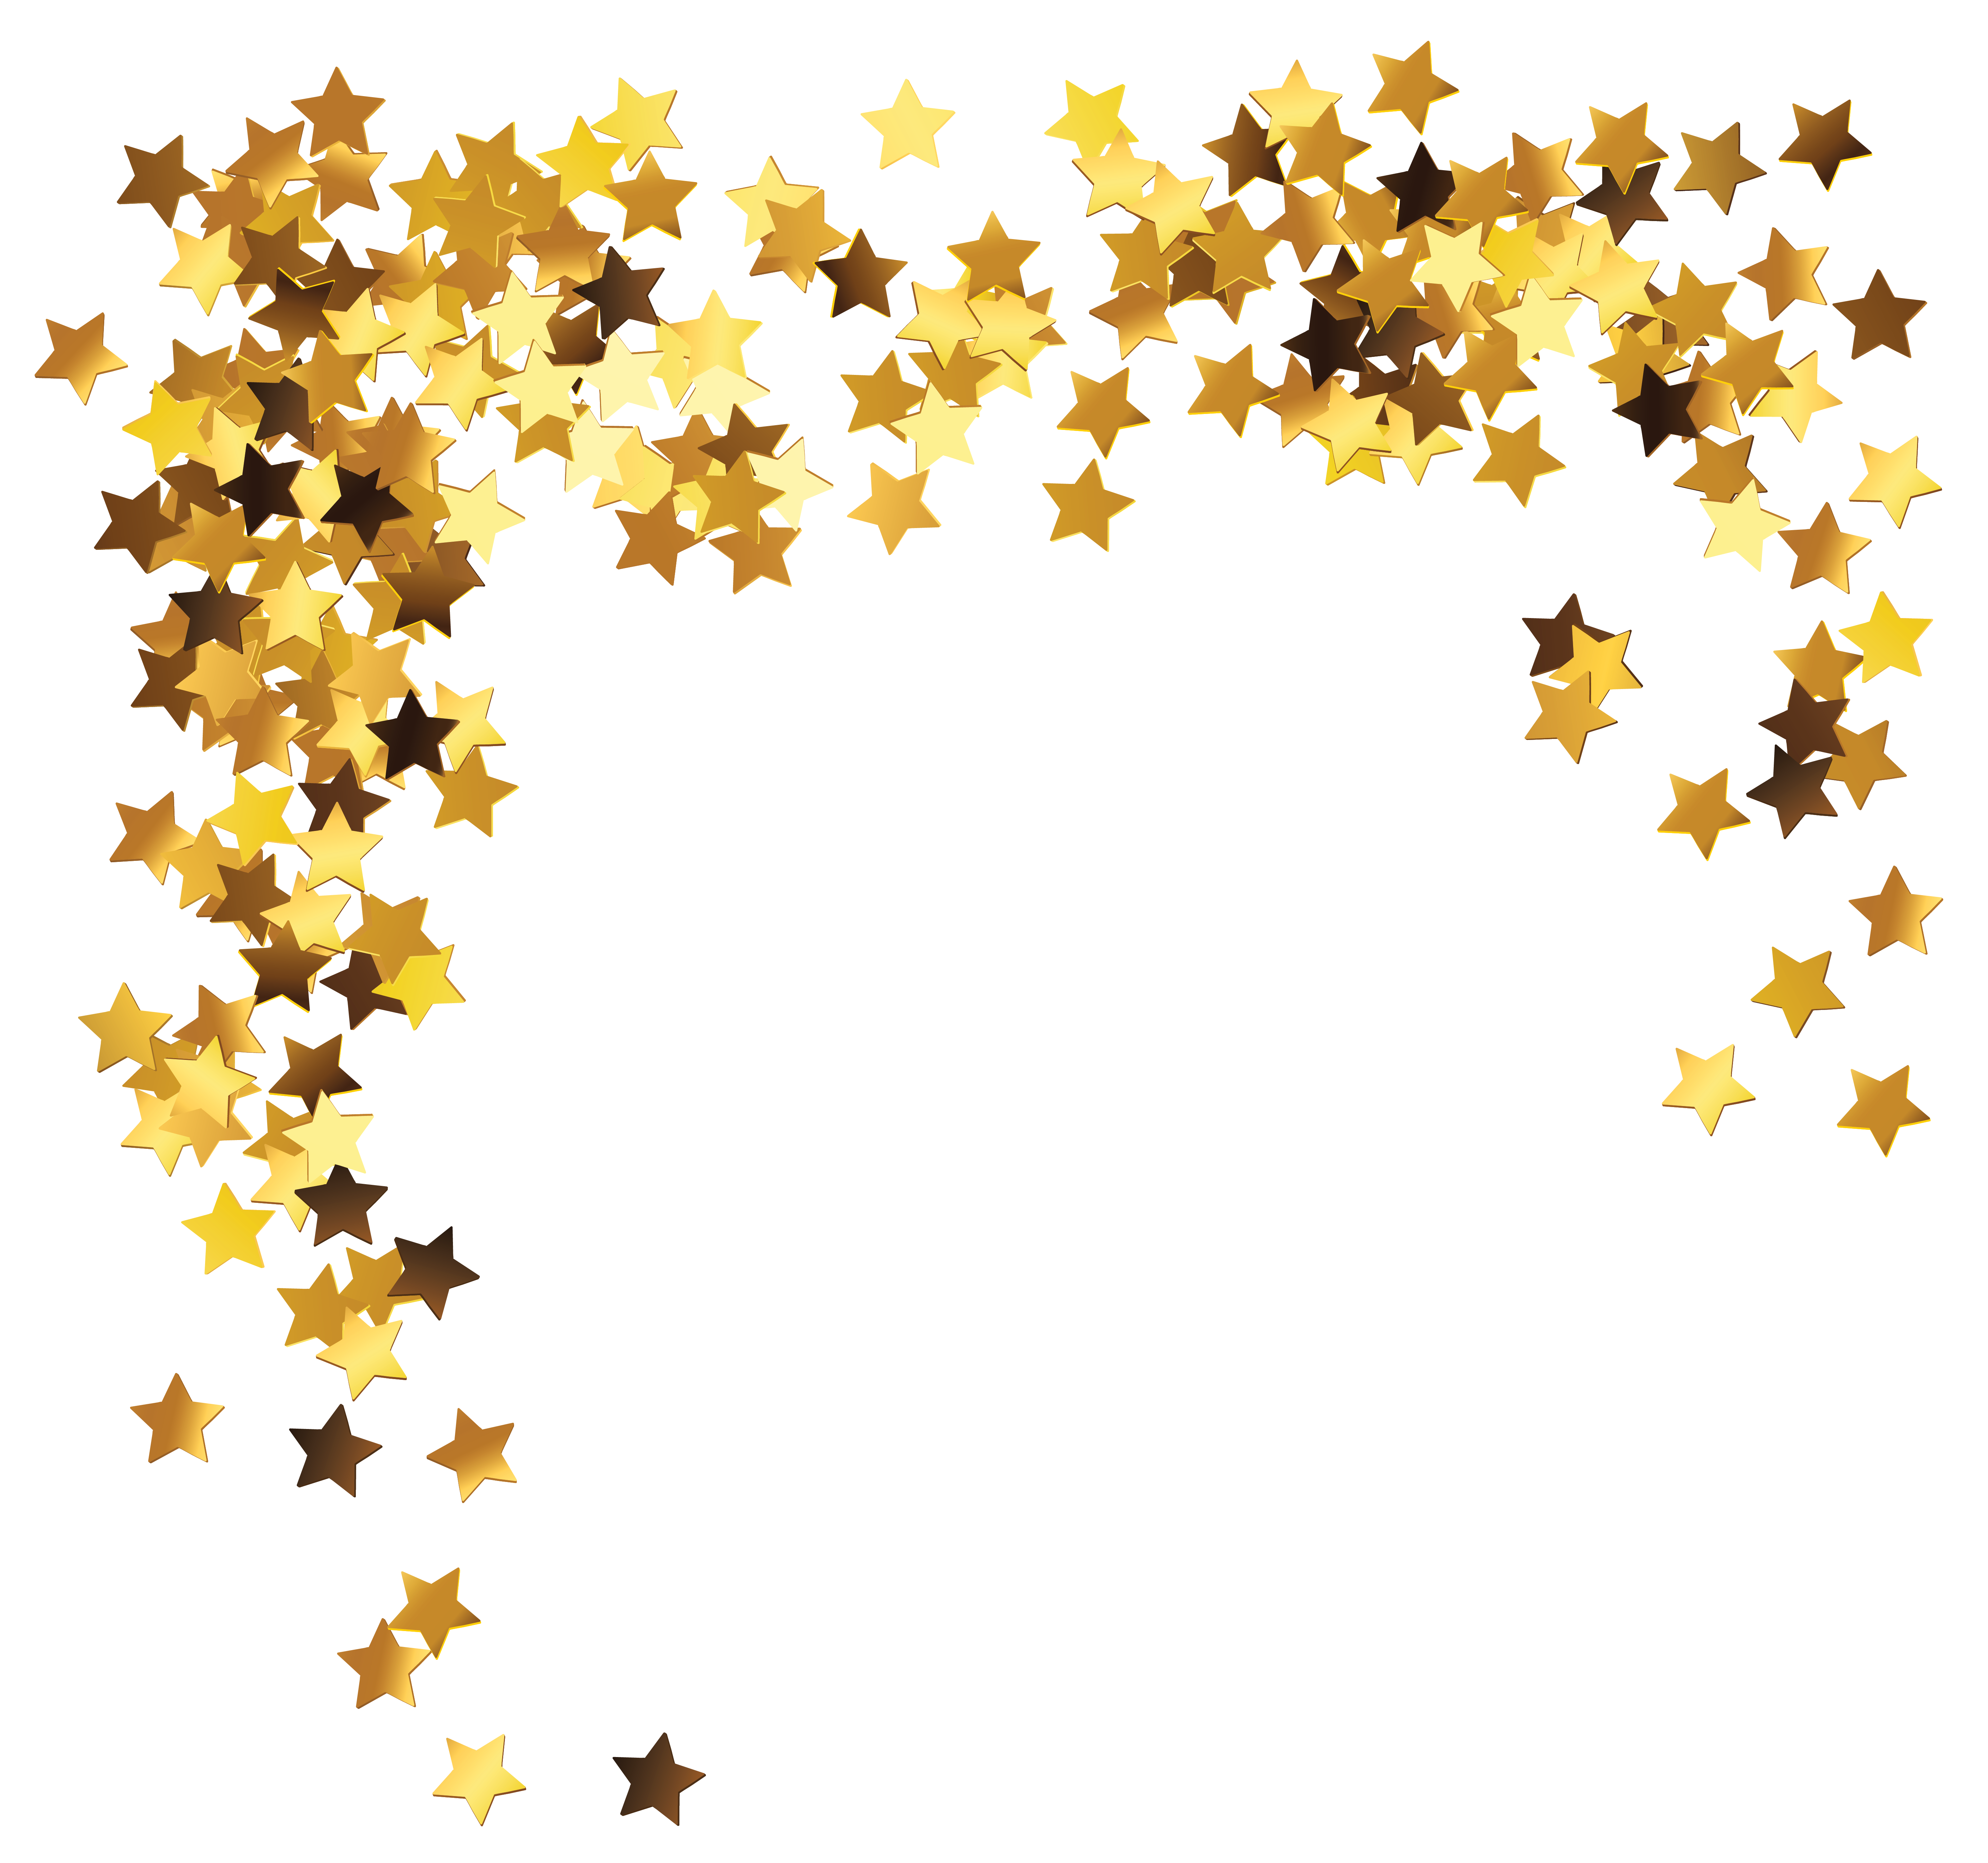 gold star clipart cluster